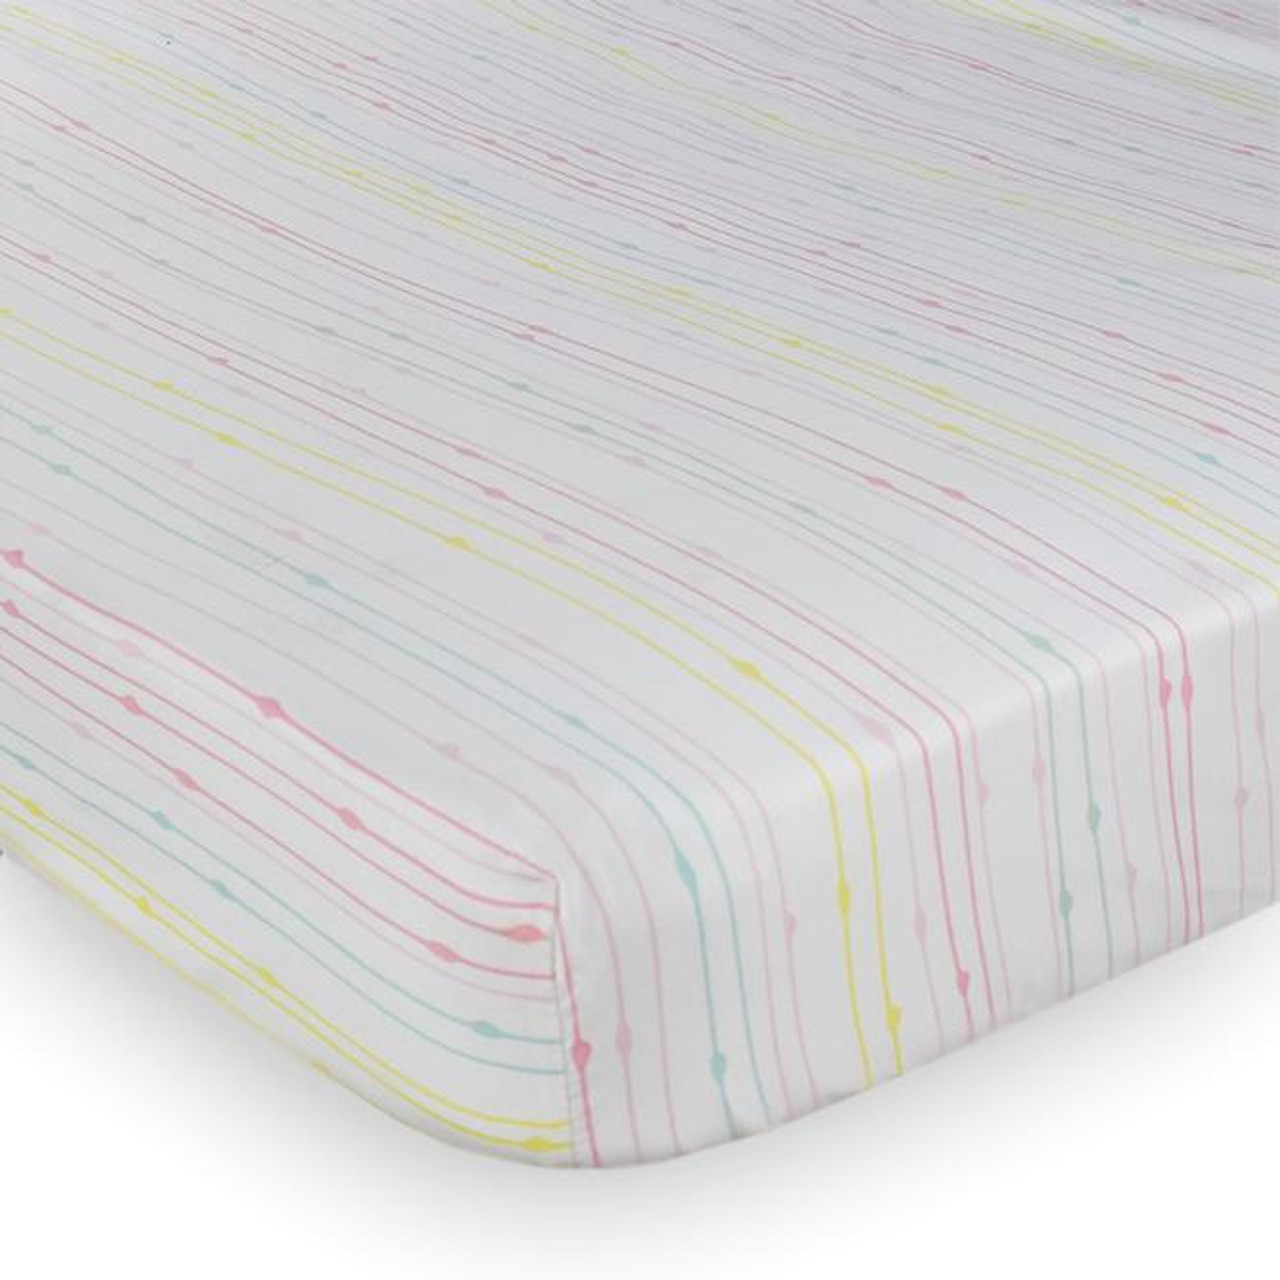 Fitted sheet #2